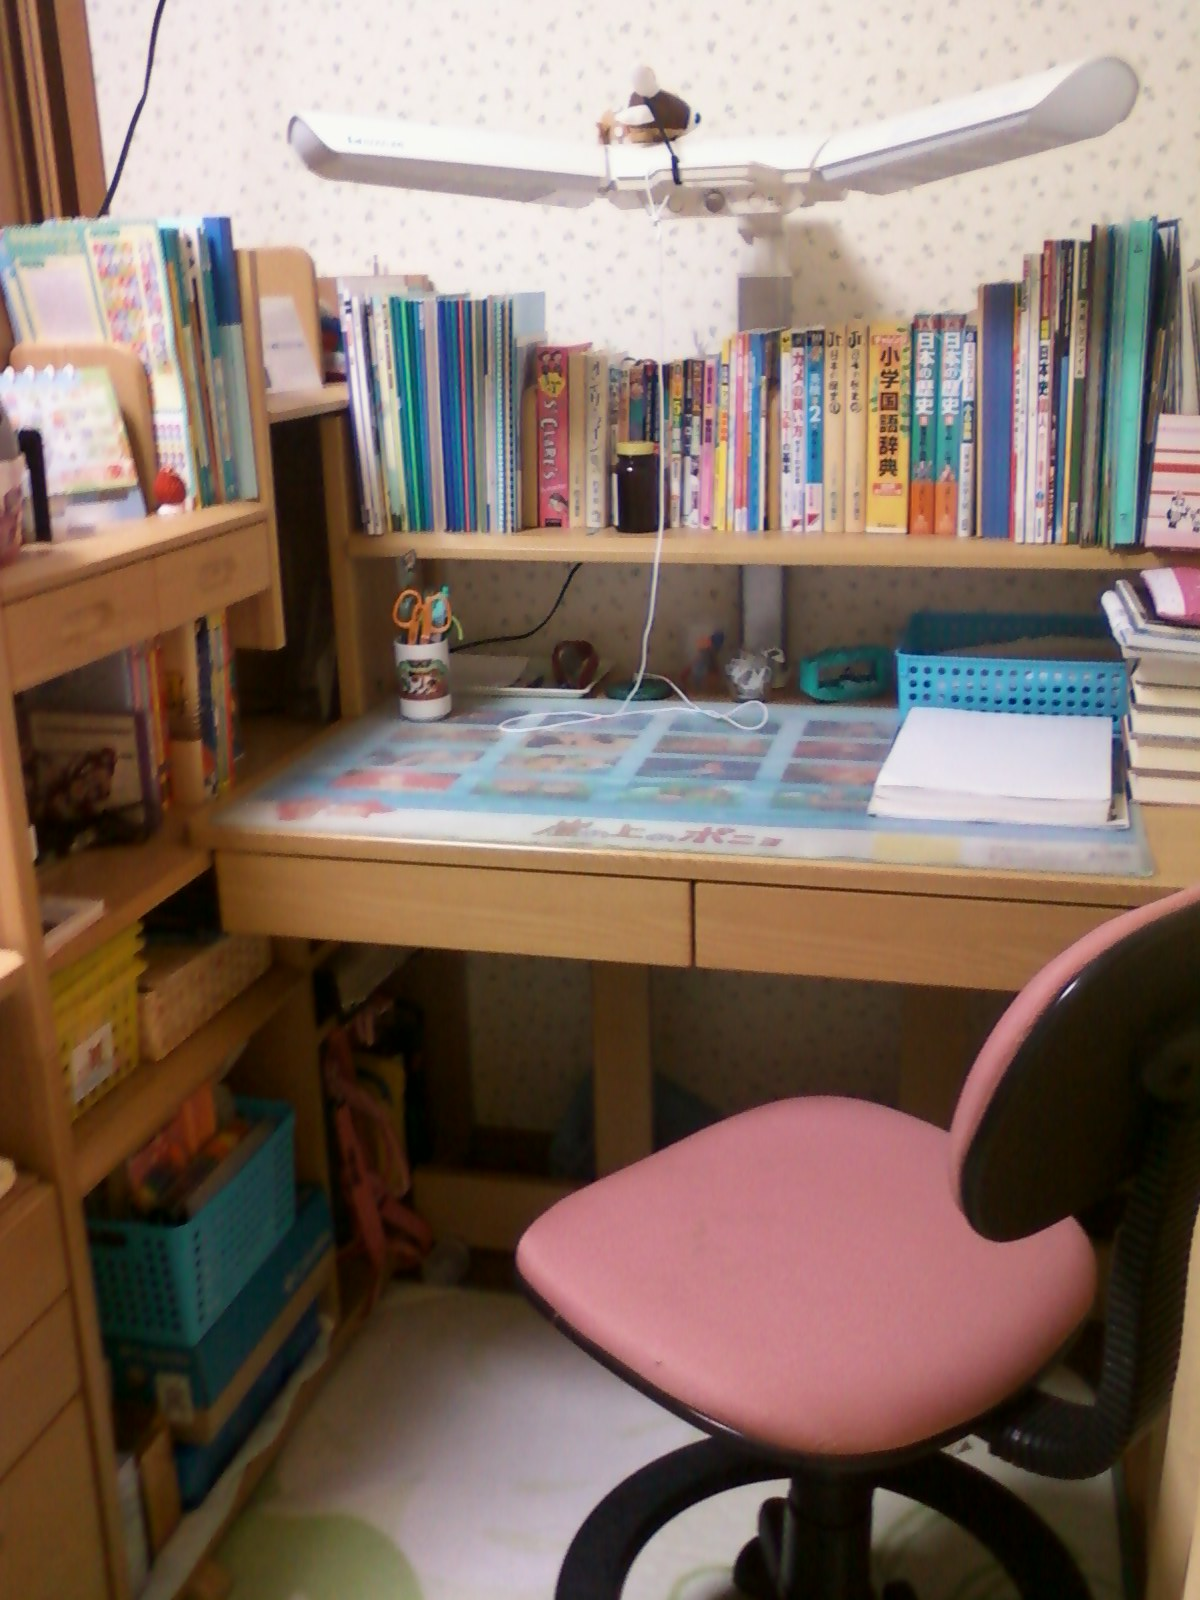 Olkd Study Room: ORGANIZATION THE PERFECT HOUSEWIFE WAY …: WE'VE BEEN